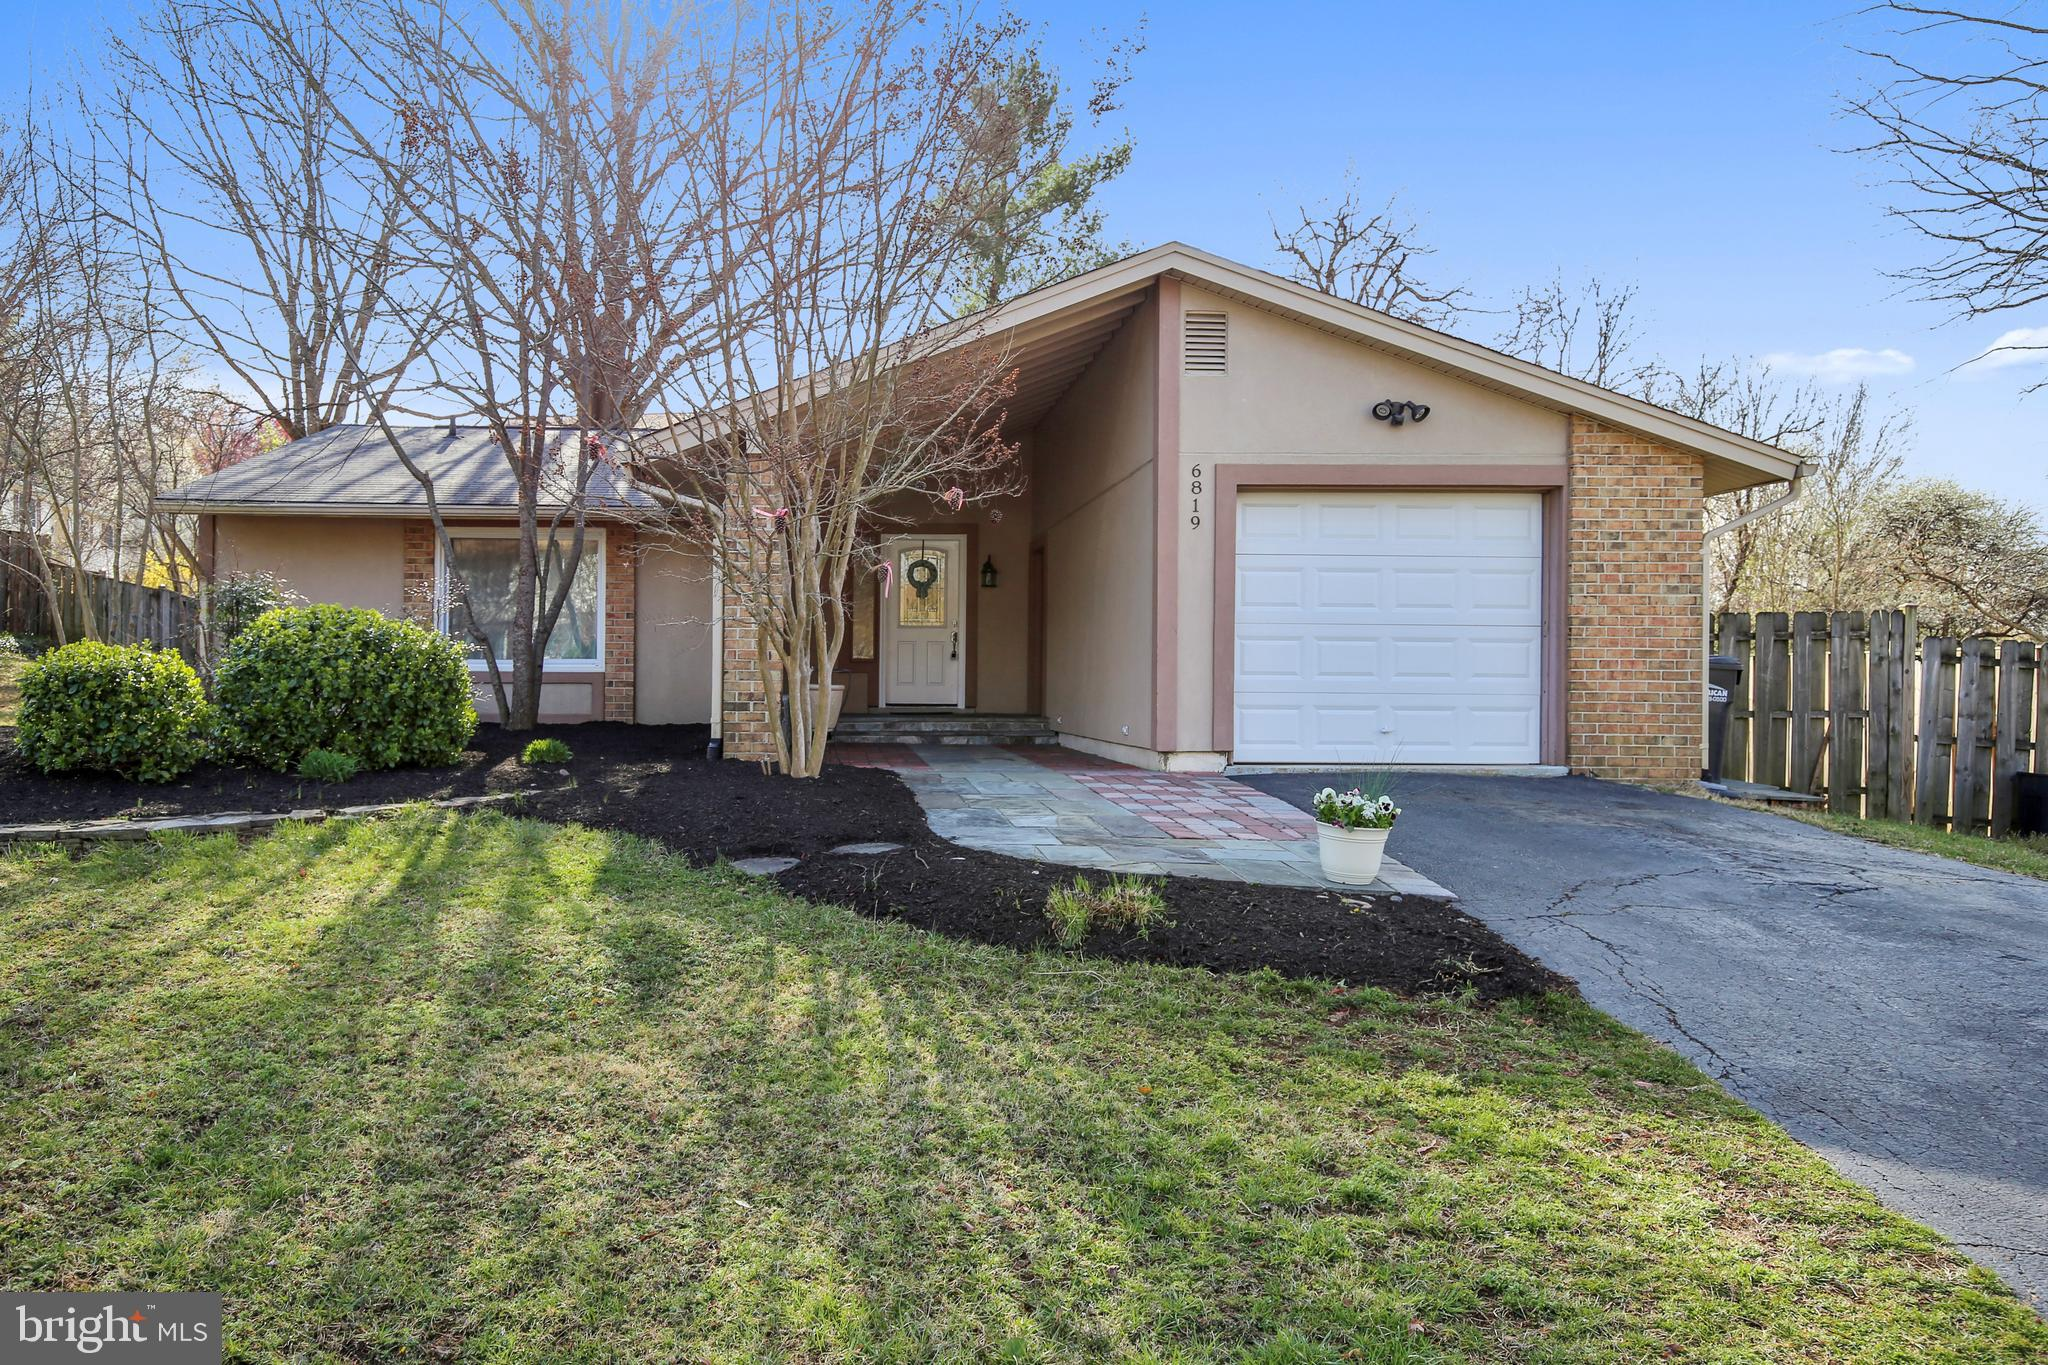 OPEN HOUSE ON SUNDAY, APRIL 7, FROM 1 TO 4 PM*******One level living at its best in freshly painted, light filled contemporary on large level lot.  Recent roof, bathroom and kitchen updates, wood floors, tile, carpeting.   Vaulted ceiling in living room and woodburning fireplace with stove insert.  Deck off the kitchen leads to level, fenced back yard.  Space for play, sports, pets, and gardening.  Built-ins in the second and third bedroom and a walk-in closet in the master bedroom.  The garage provides space for a car and additional storage.                               A wonderful spot to call home -- near Huntley Meadows, Wegman's, Fort Belvoir, and Kingstowne.